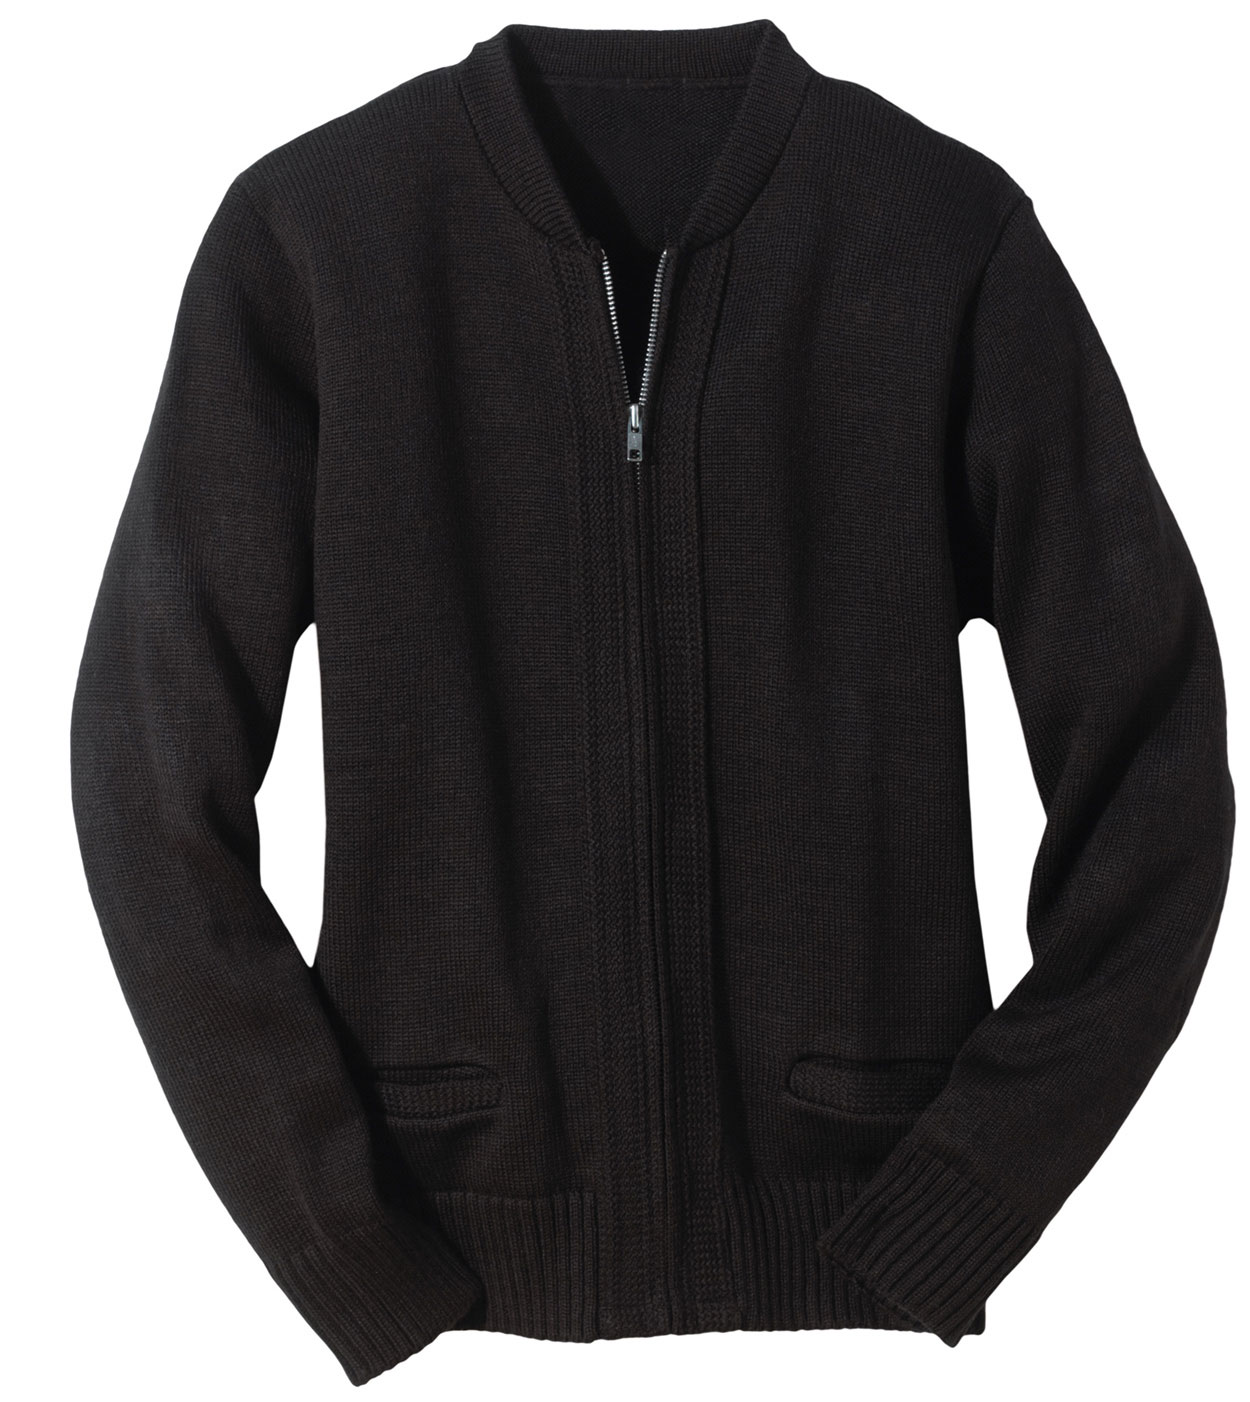 Full-Zip Cardigan Sweater